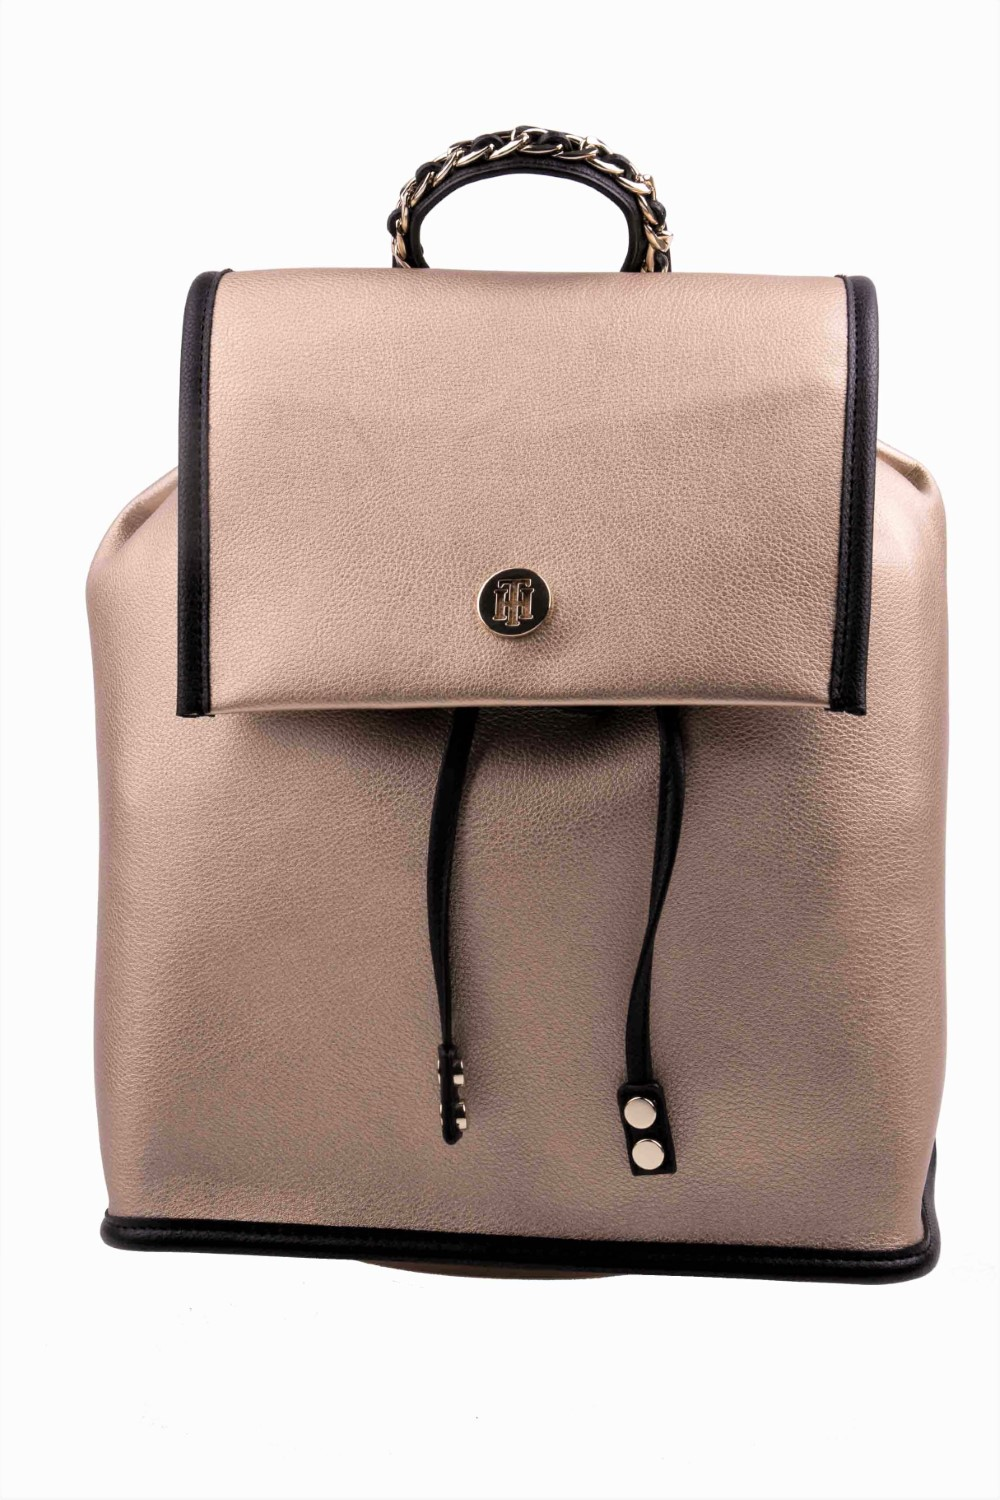 Tommy Hilfiger gold backpack Tommy Chain Backpack - Women s Handbags ... a89fd007d61